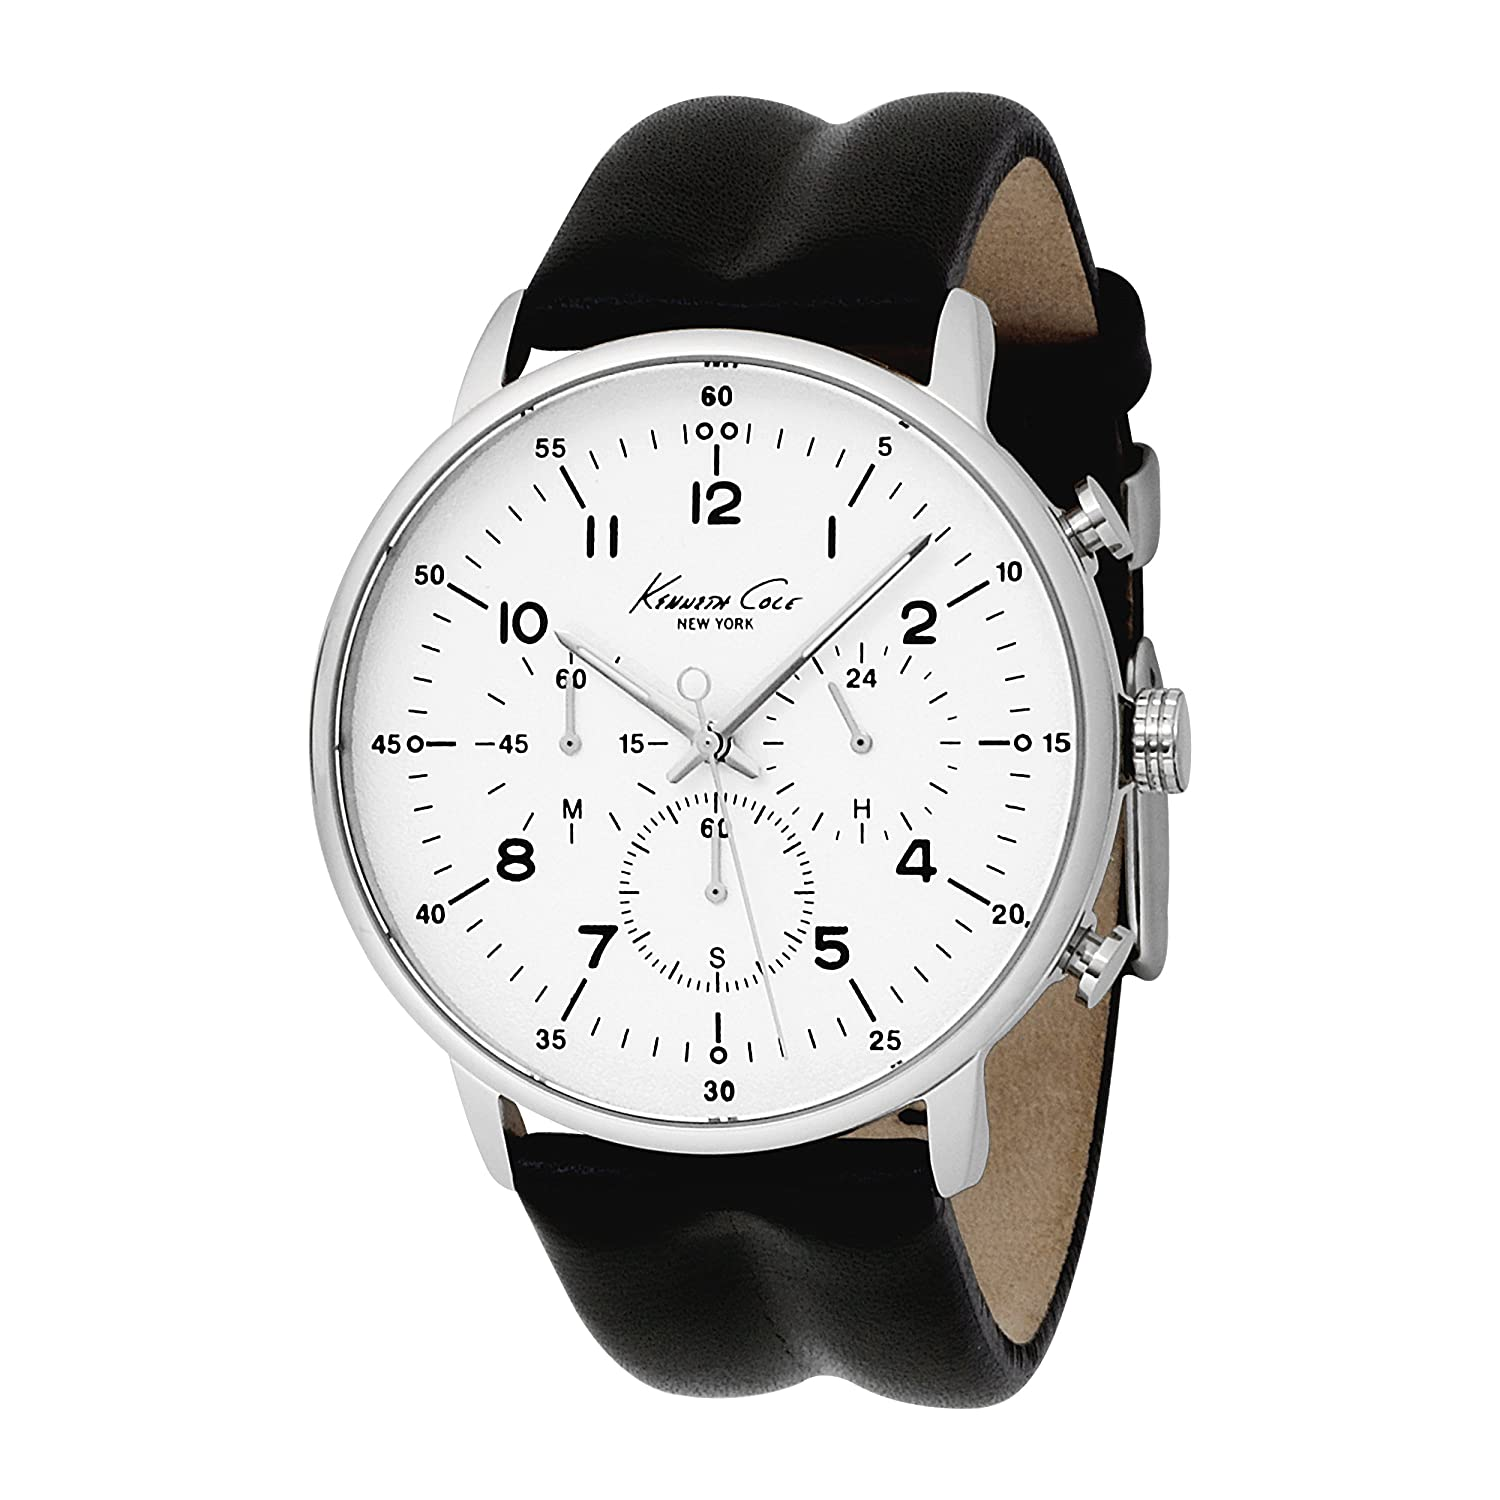 Đồng hồ Kenneth Cole New York Mens KC1568 Iconic Chronograph Black